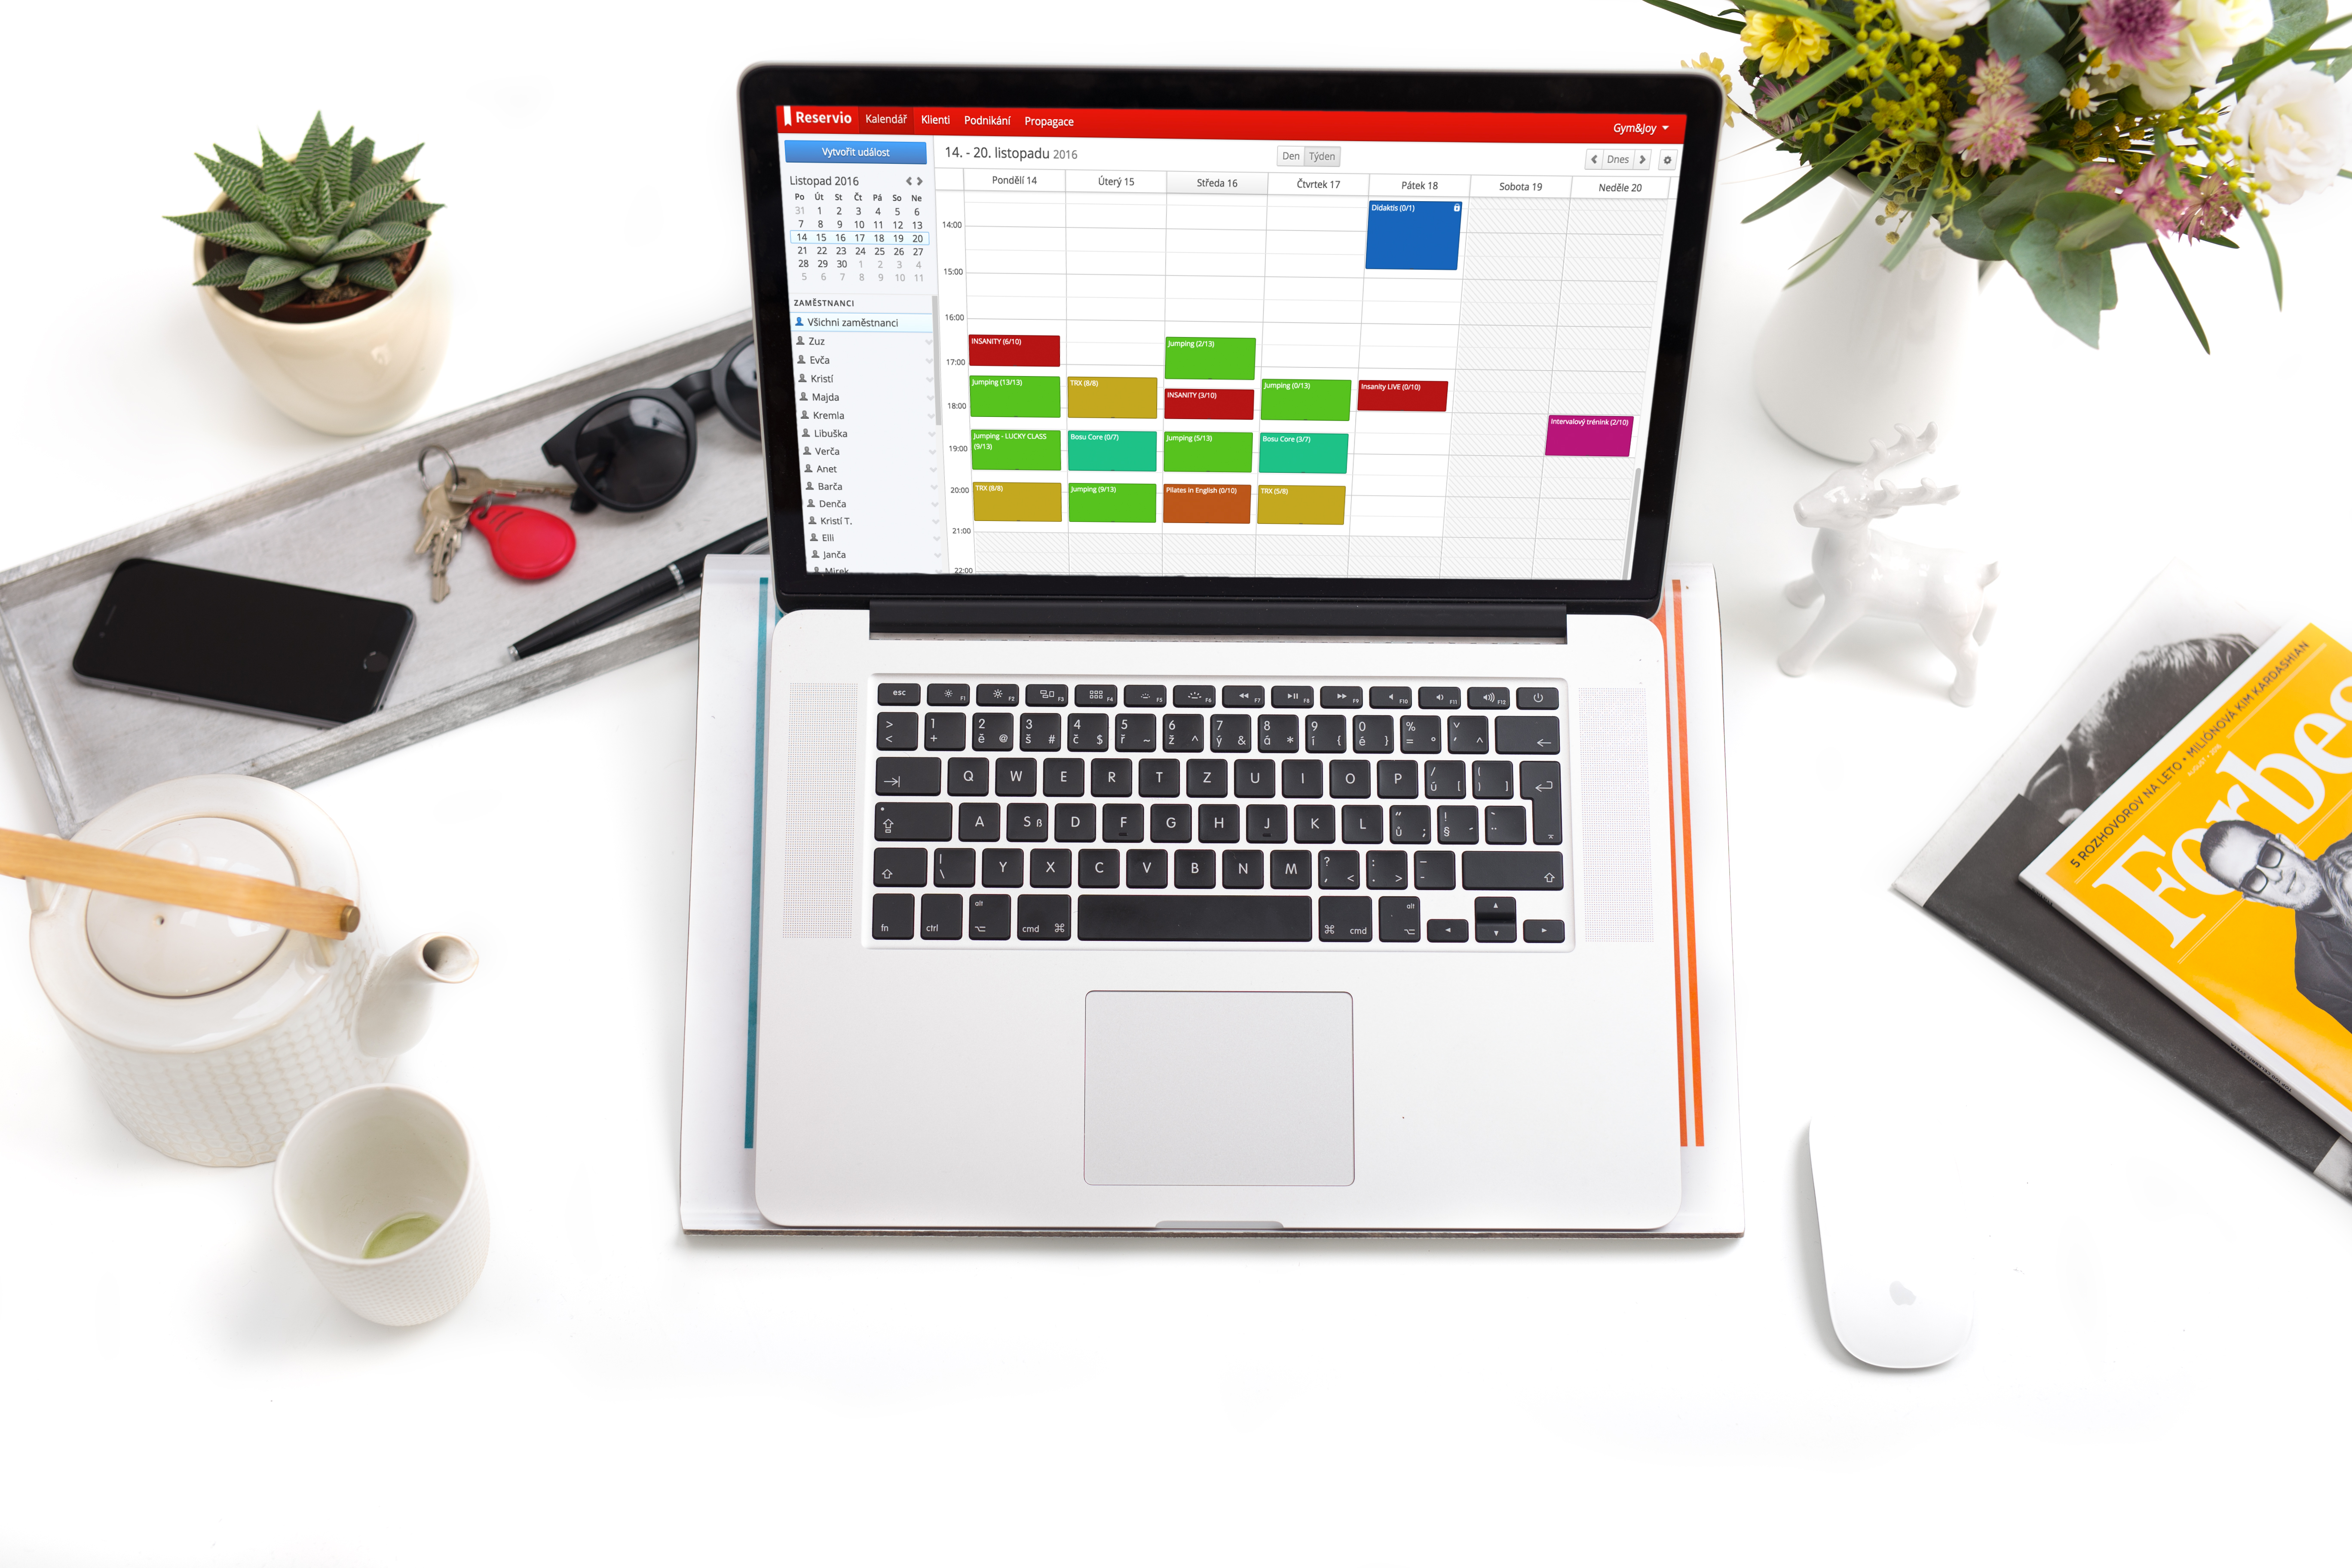 Reservio screenshot: Keep track of appointments in an elegant drag-and-drop calendar